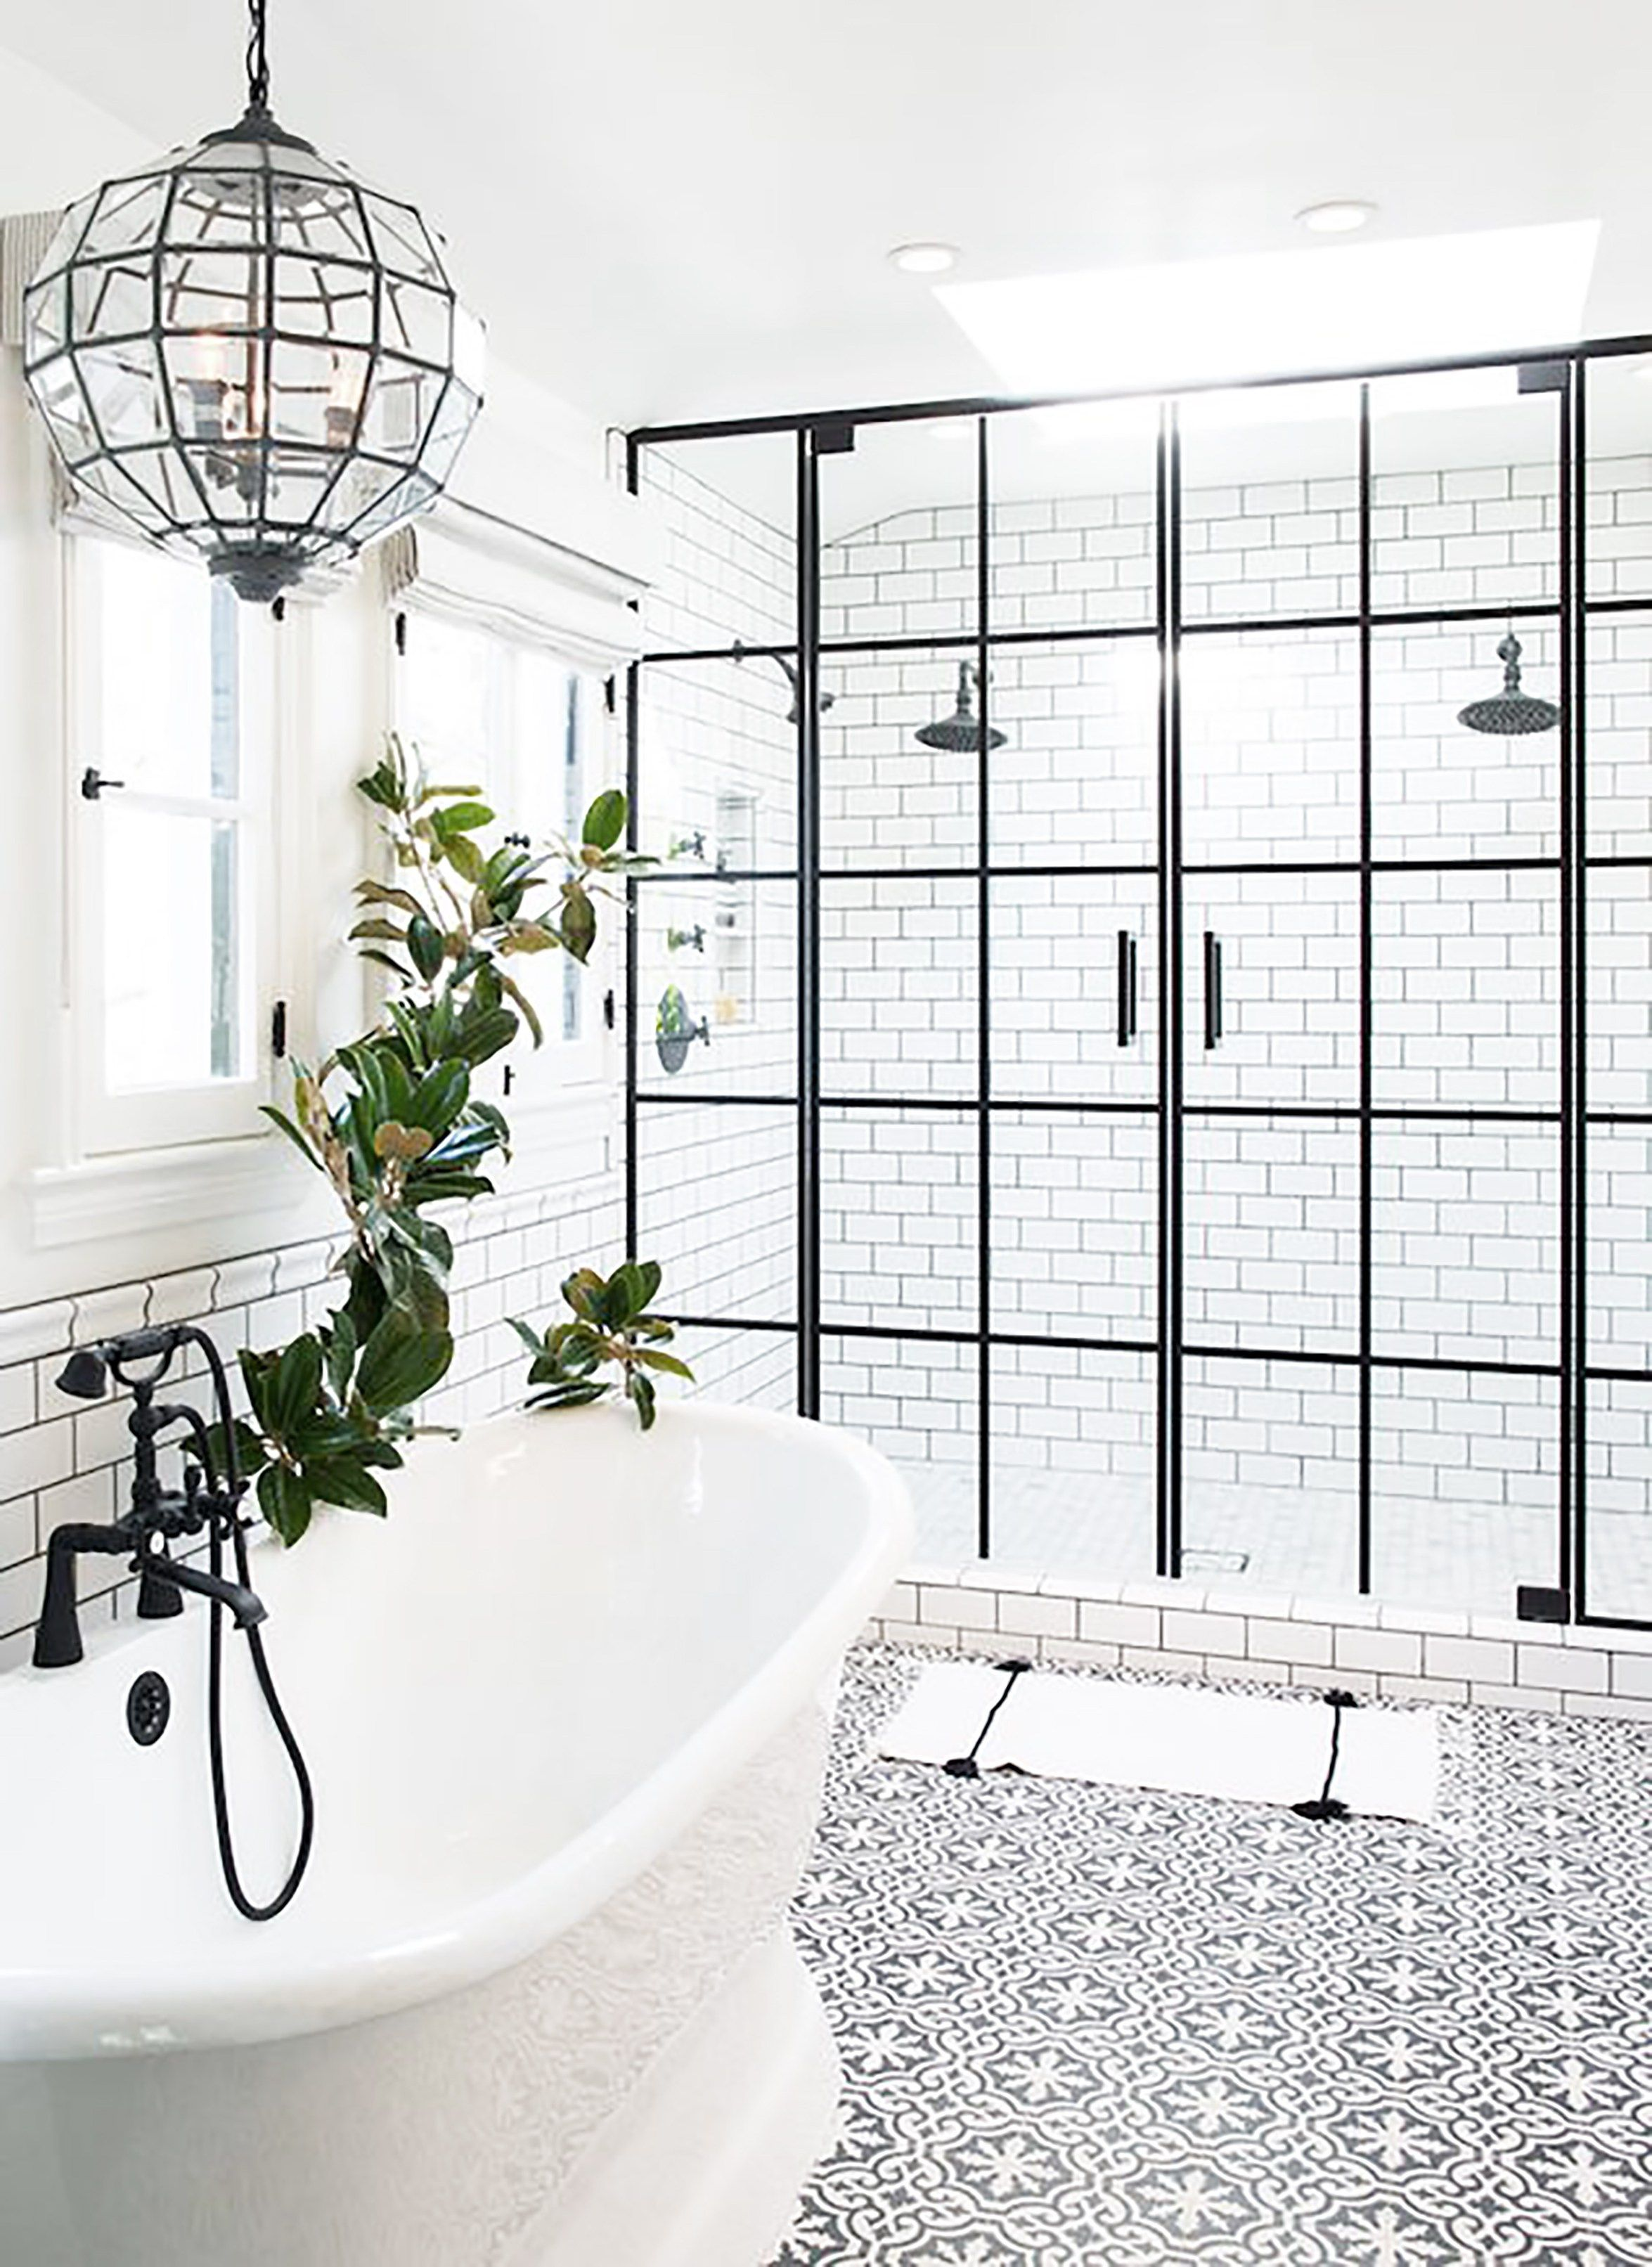 So dreamy...that floor tile! that pendant light! the double shower ...